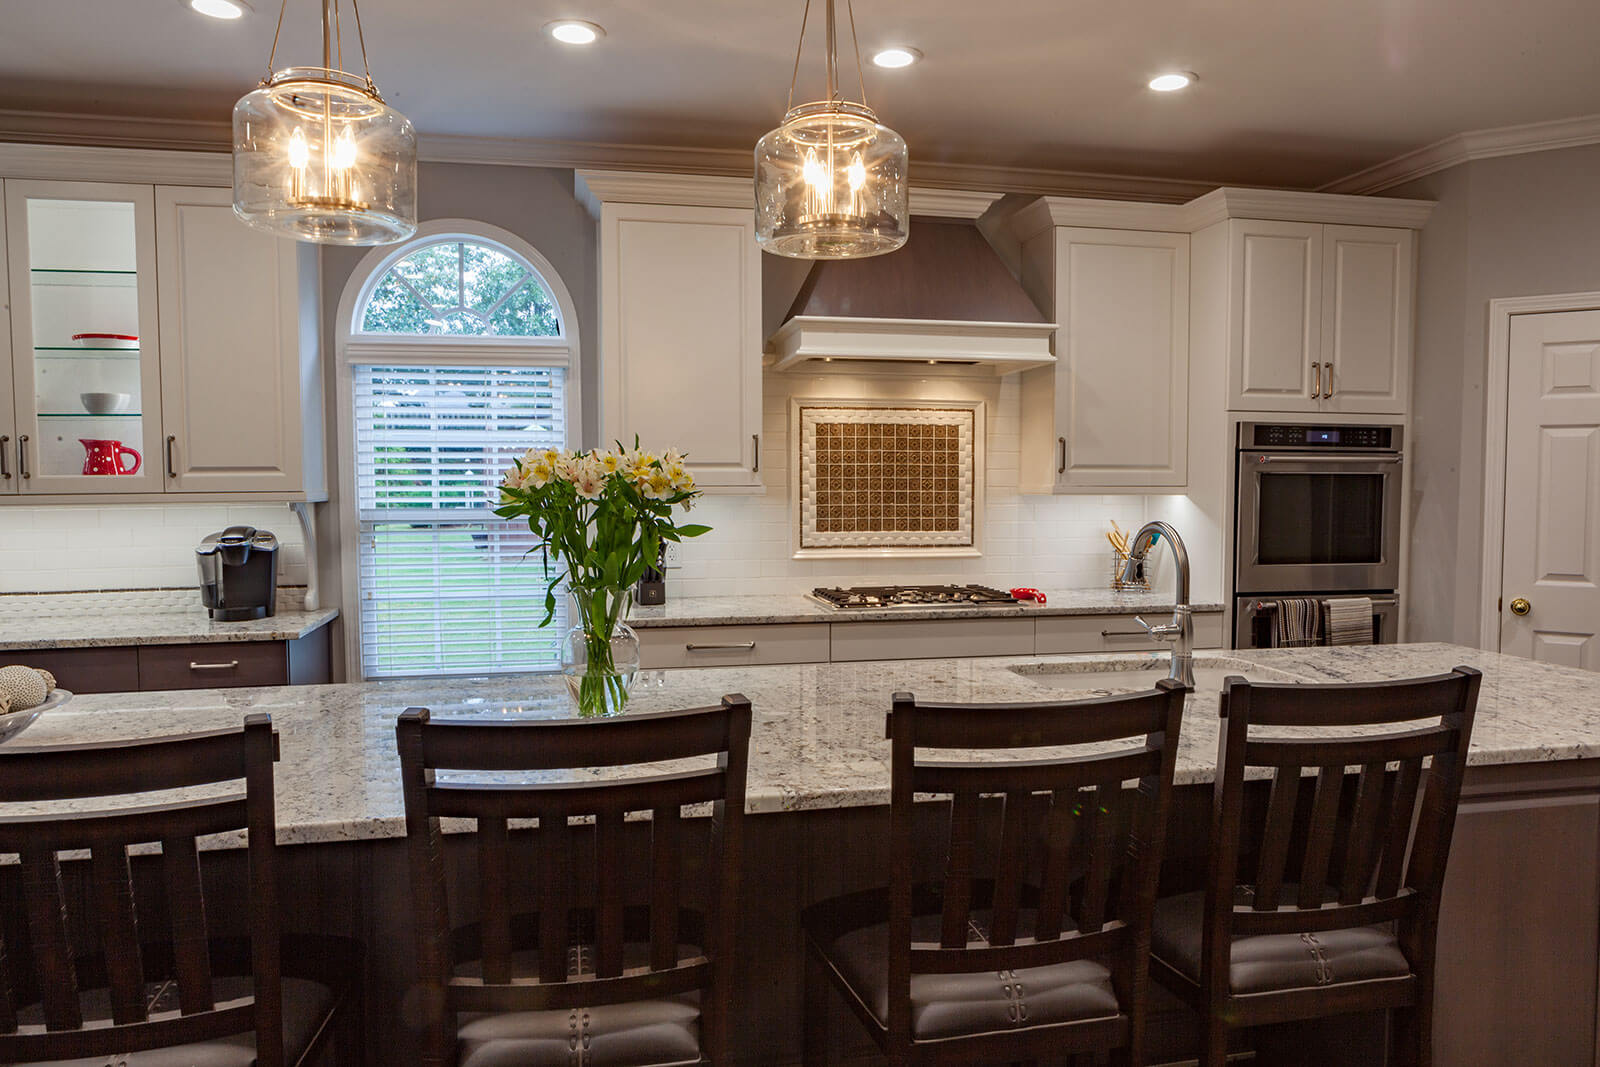 Galley Style Kitchen with Large Island - Cheryl Pett Design